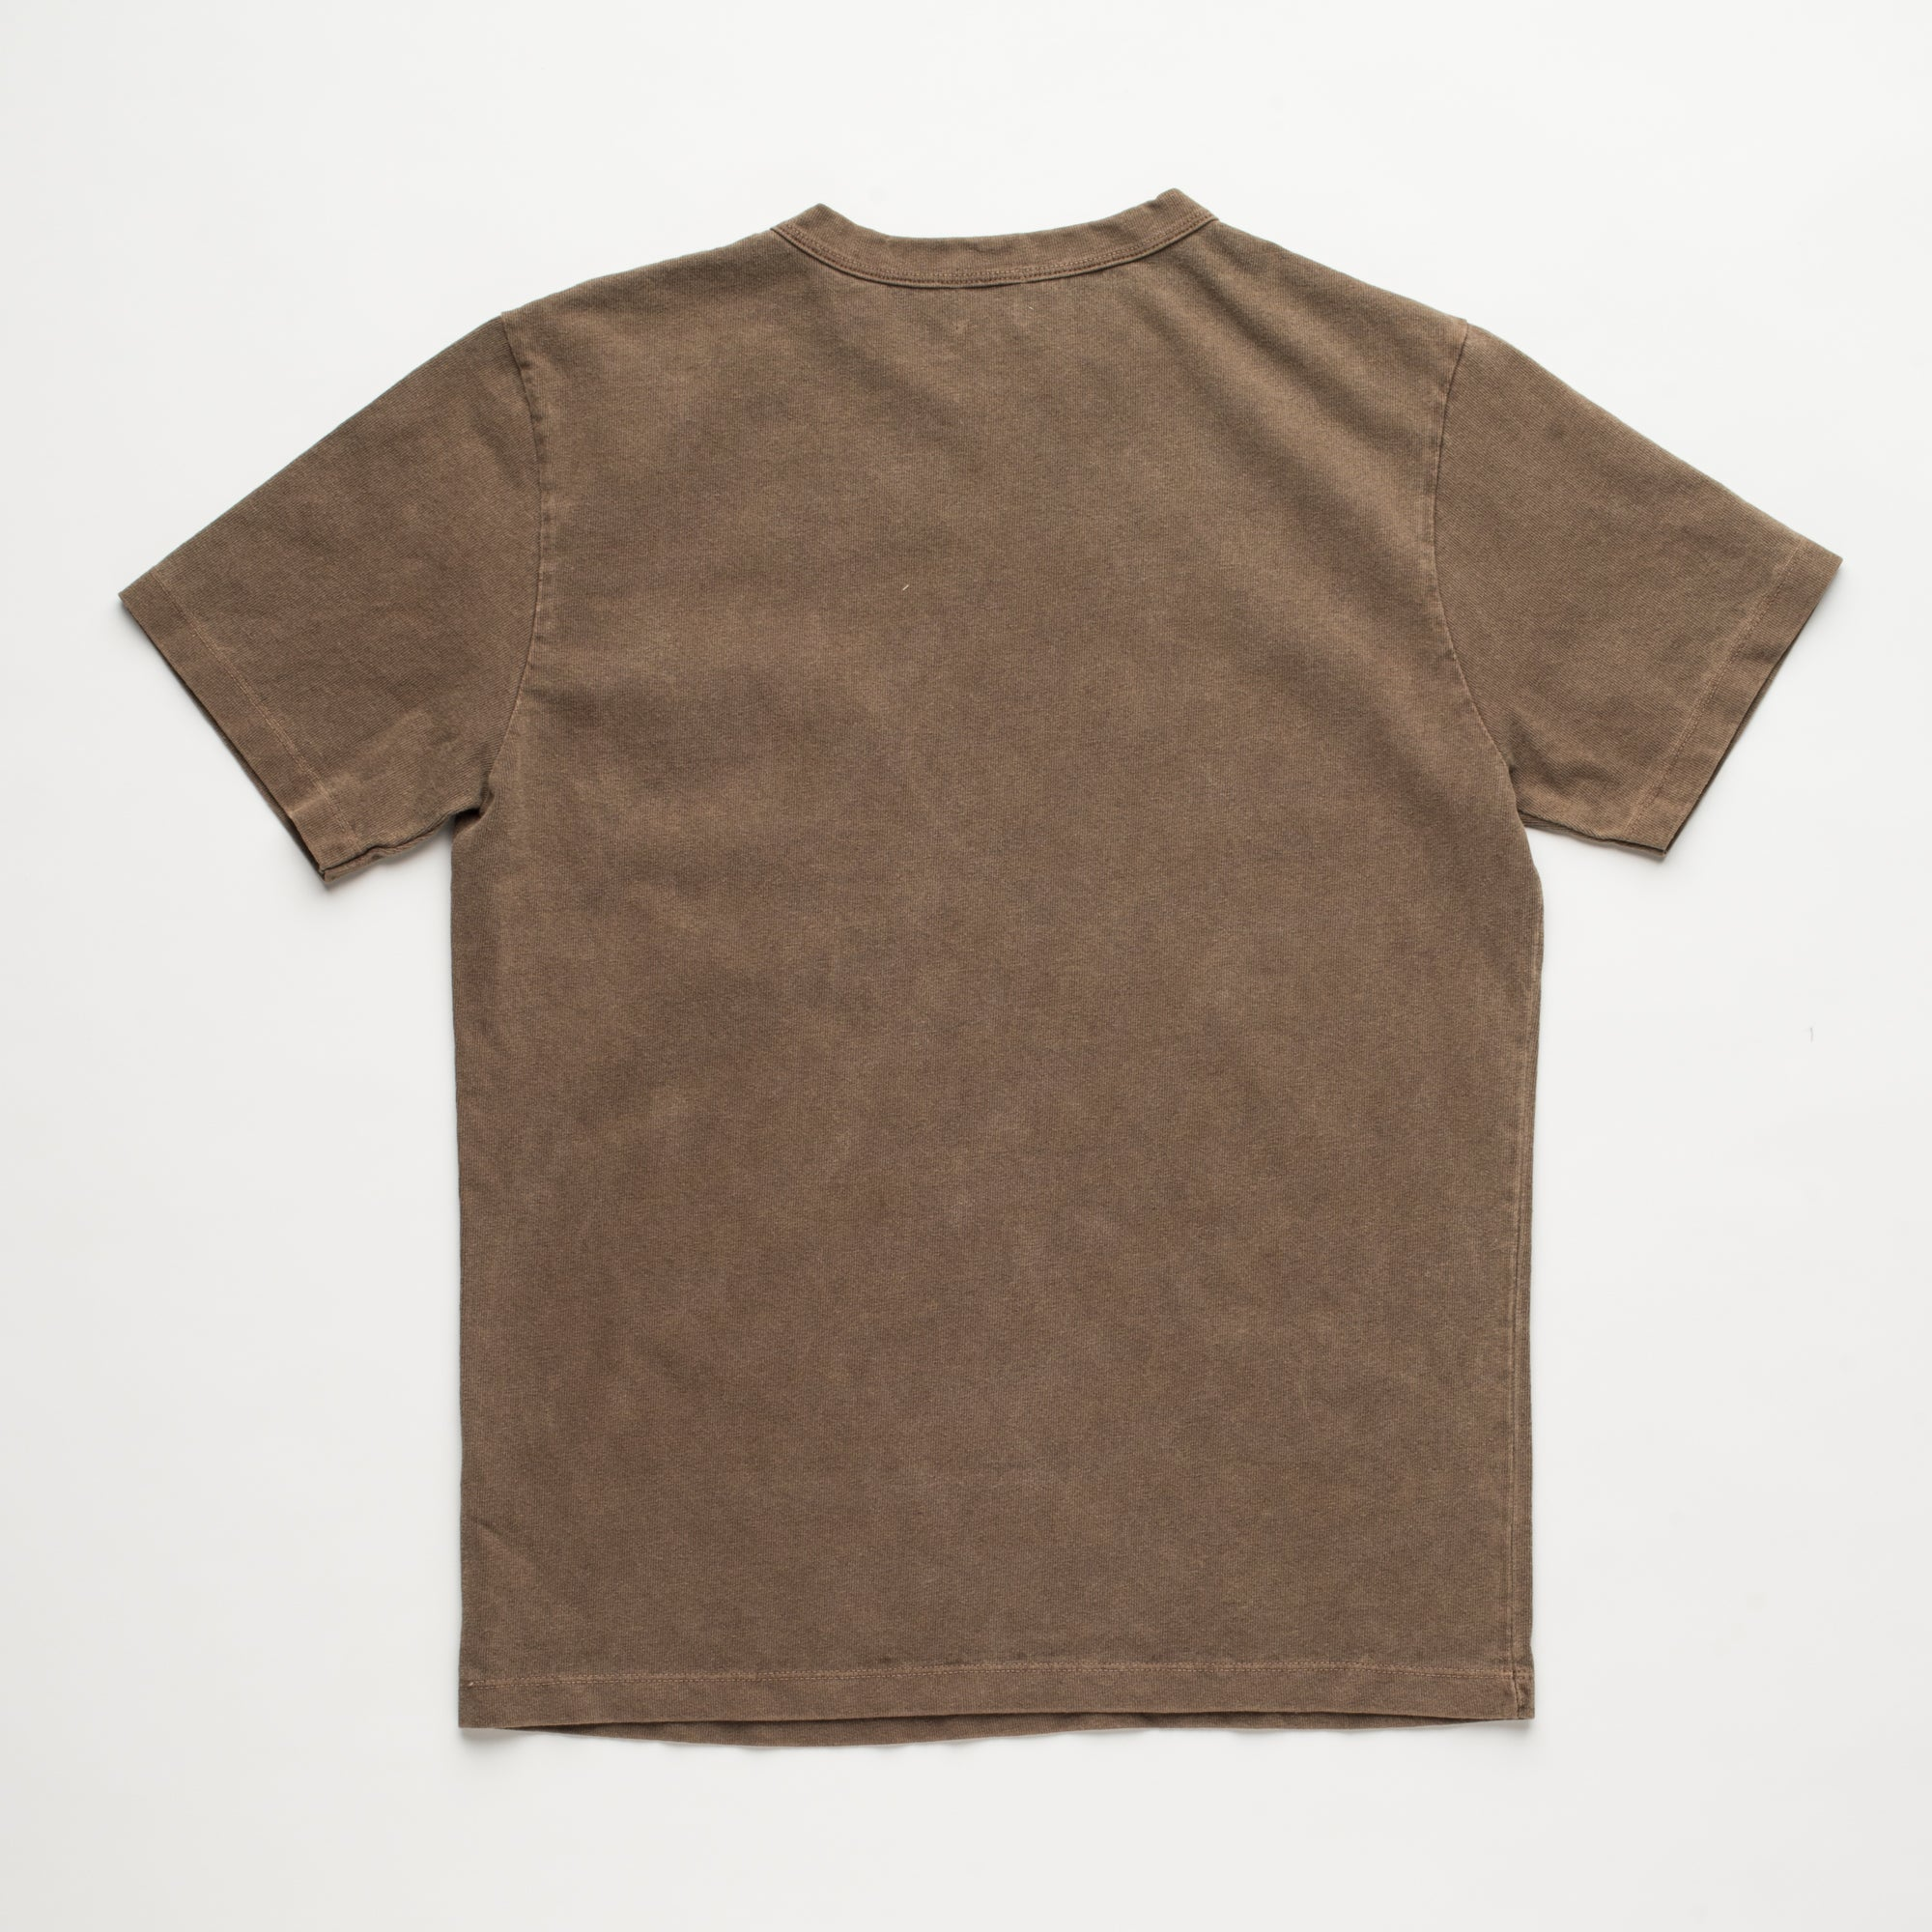 13 OUNCE T-SHIRT DARK OLIVE Back